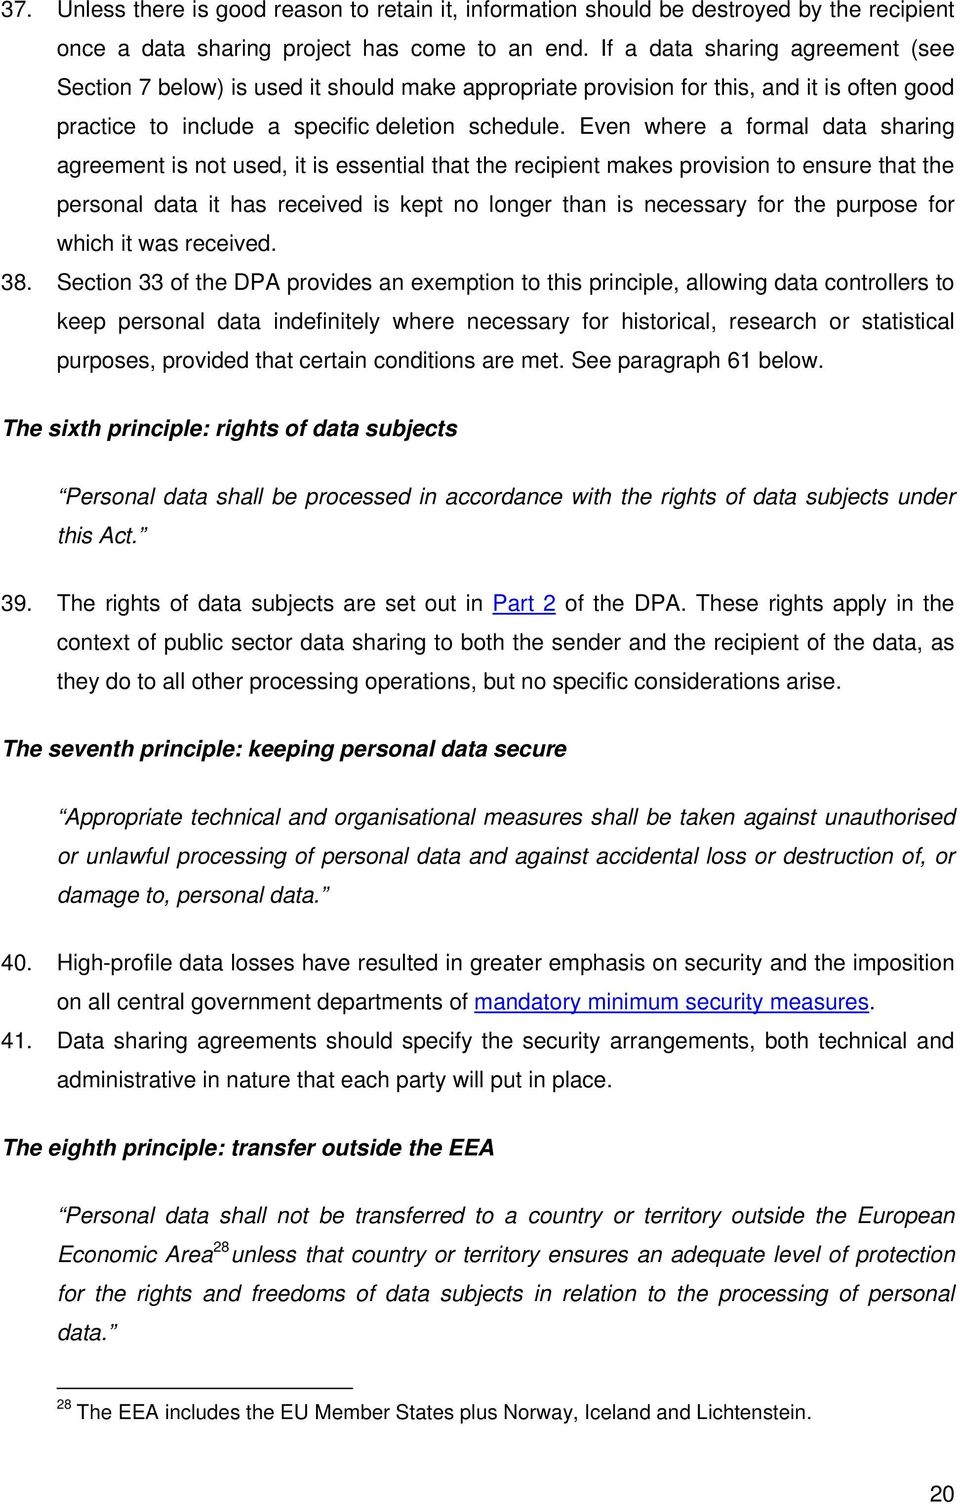 Even where a formal data sharing agreement is not used, it is essential that the recipient makes provision to ensure that the personal data it has received is kept no longer than is necessary for the